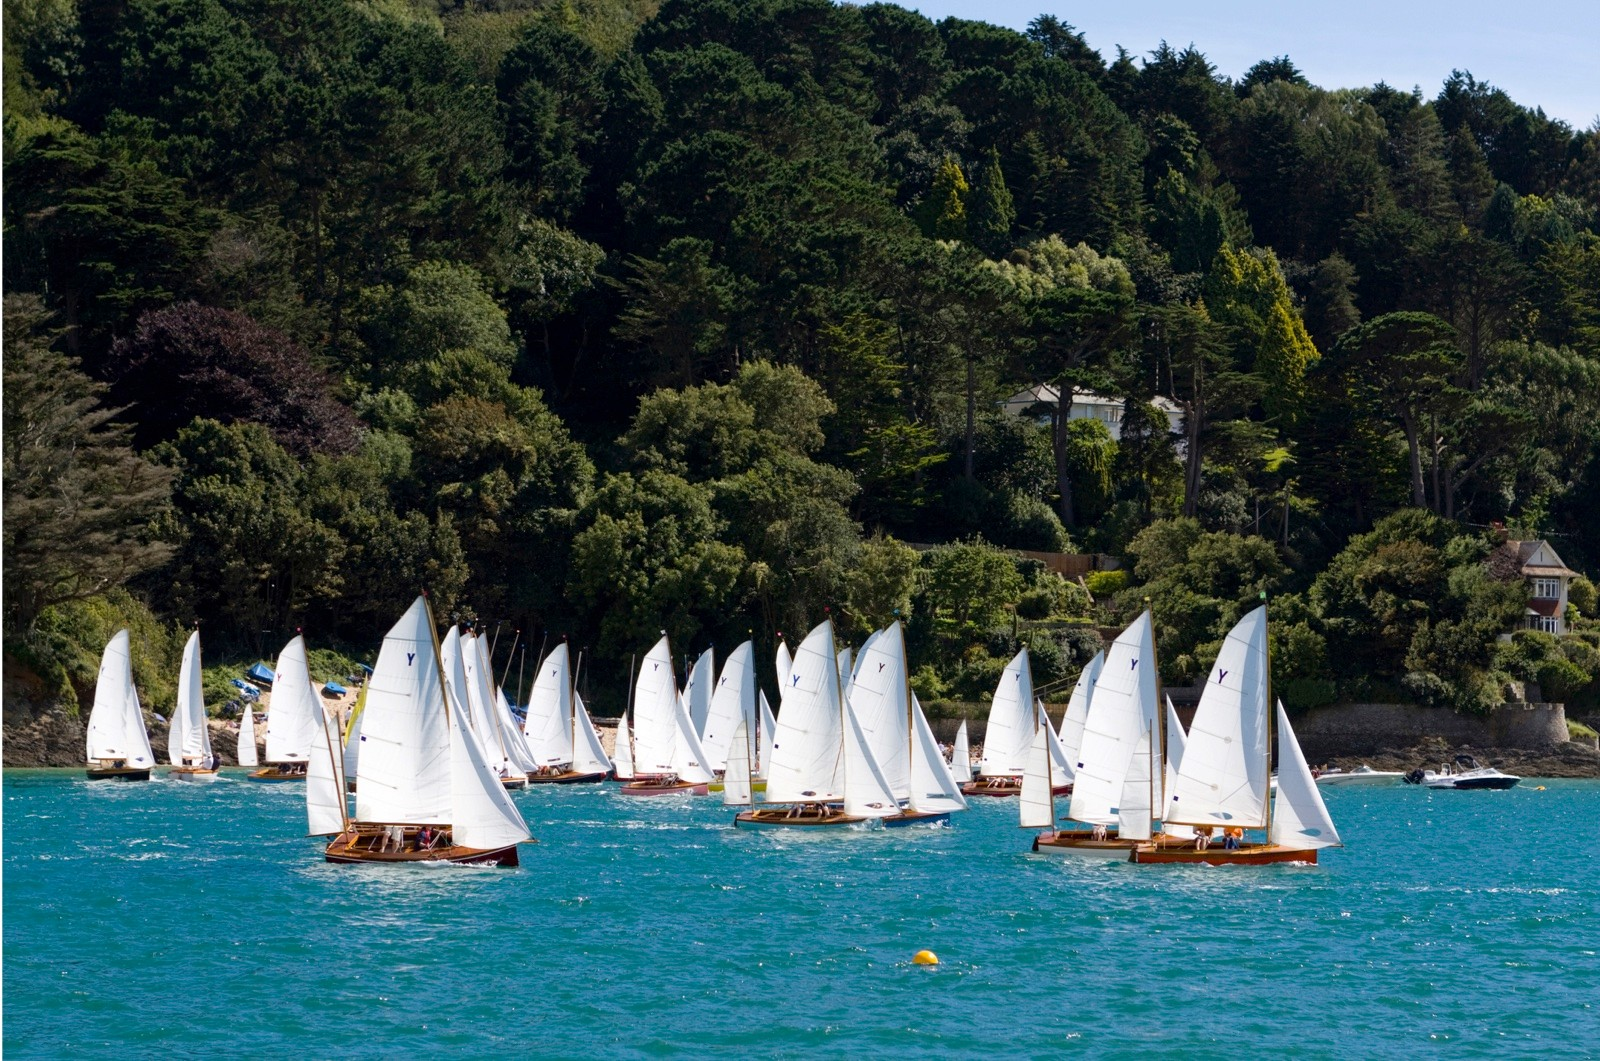 Yawl class sailboats racing in beautiful estuary. Salcombe, Devon, UK.